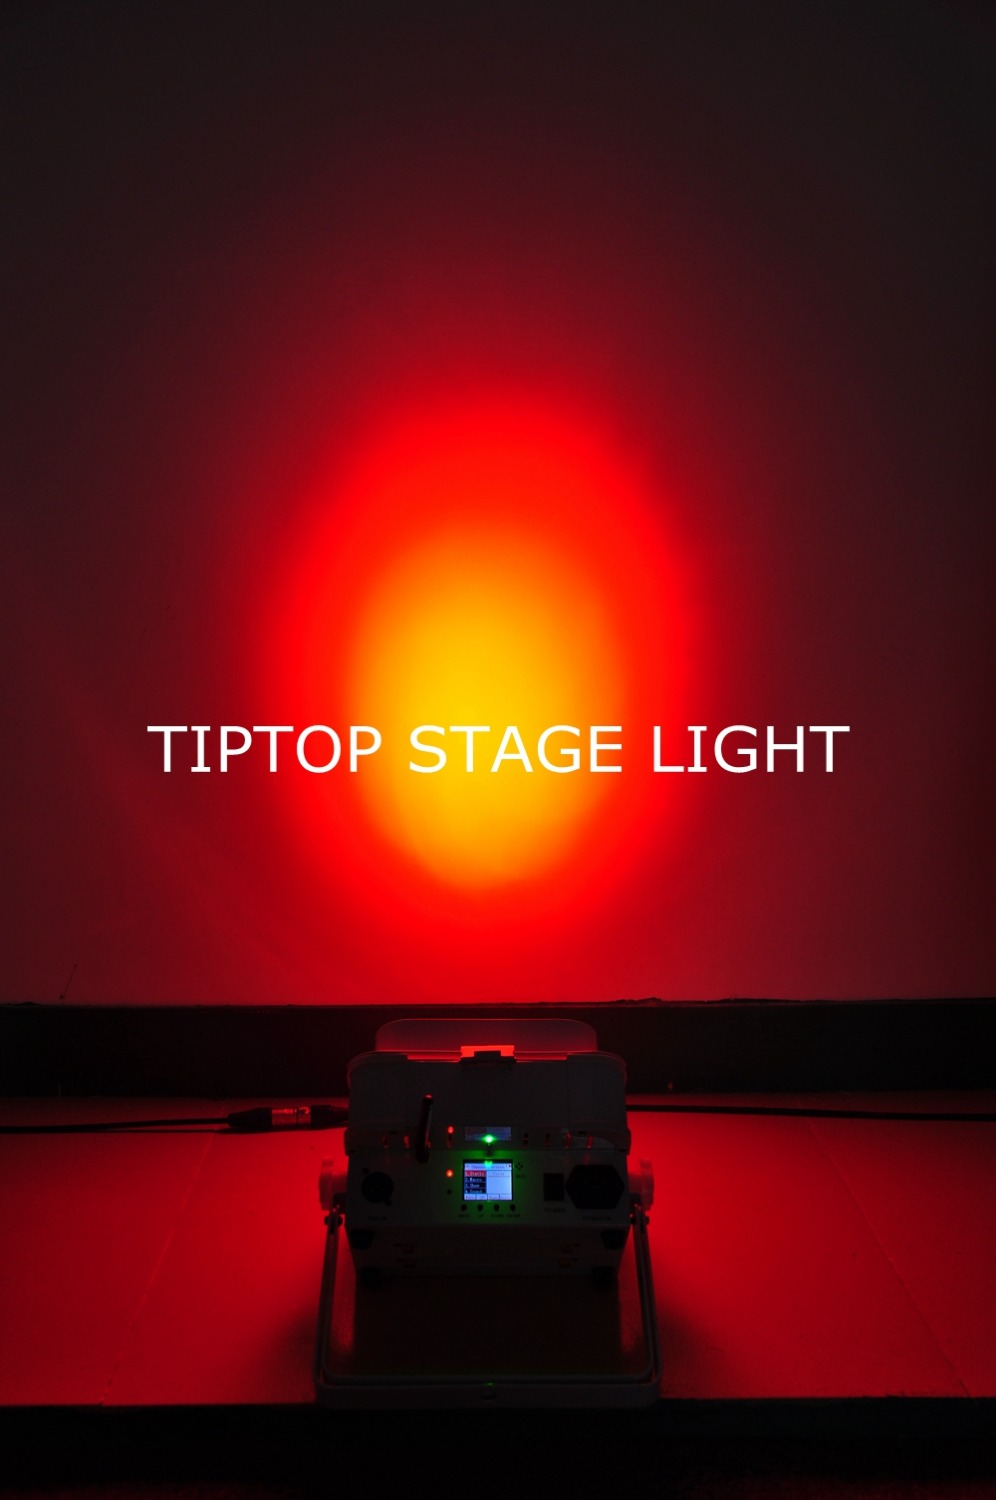 TIPTOP TP-G3049-5IN1 Price off of promotion mini smart dj uplighting light 9*15W RGBAW 5in1 Smart phone control Carry Handle